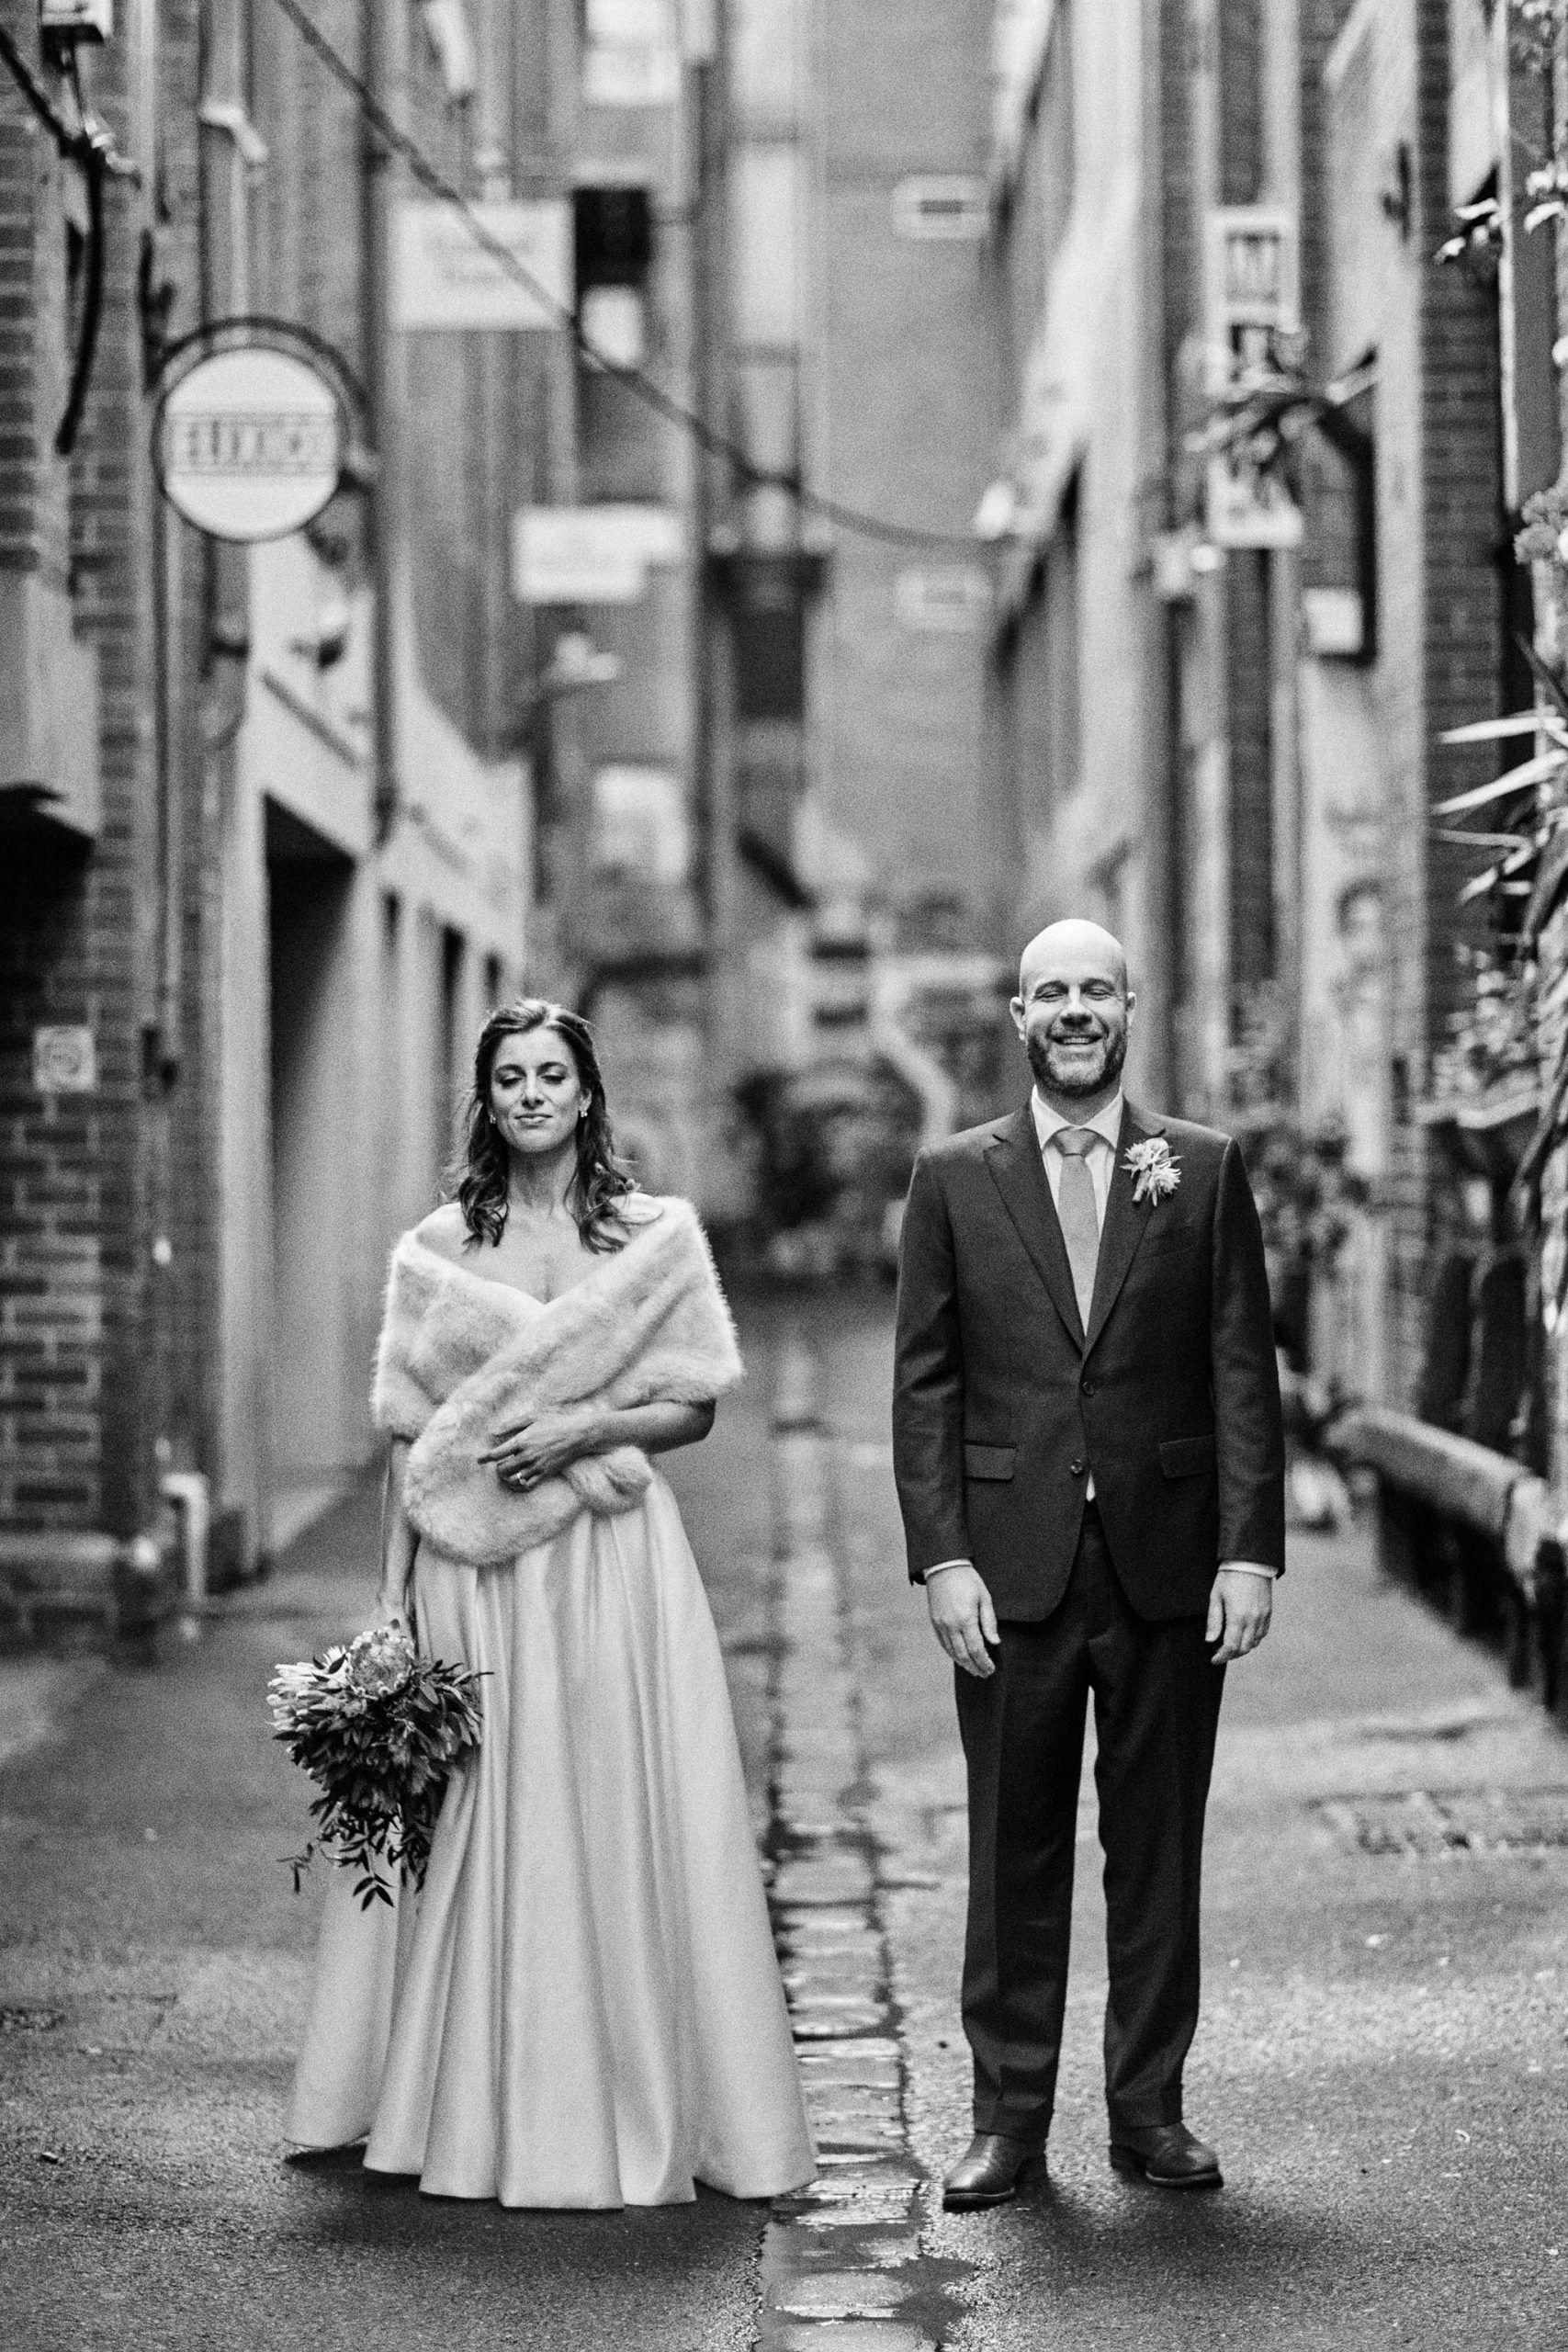 Melbourne Wedding Hardware Lane alley portrait bride groom